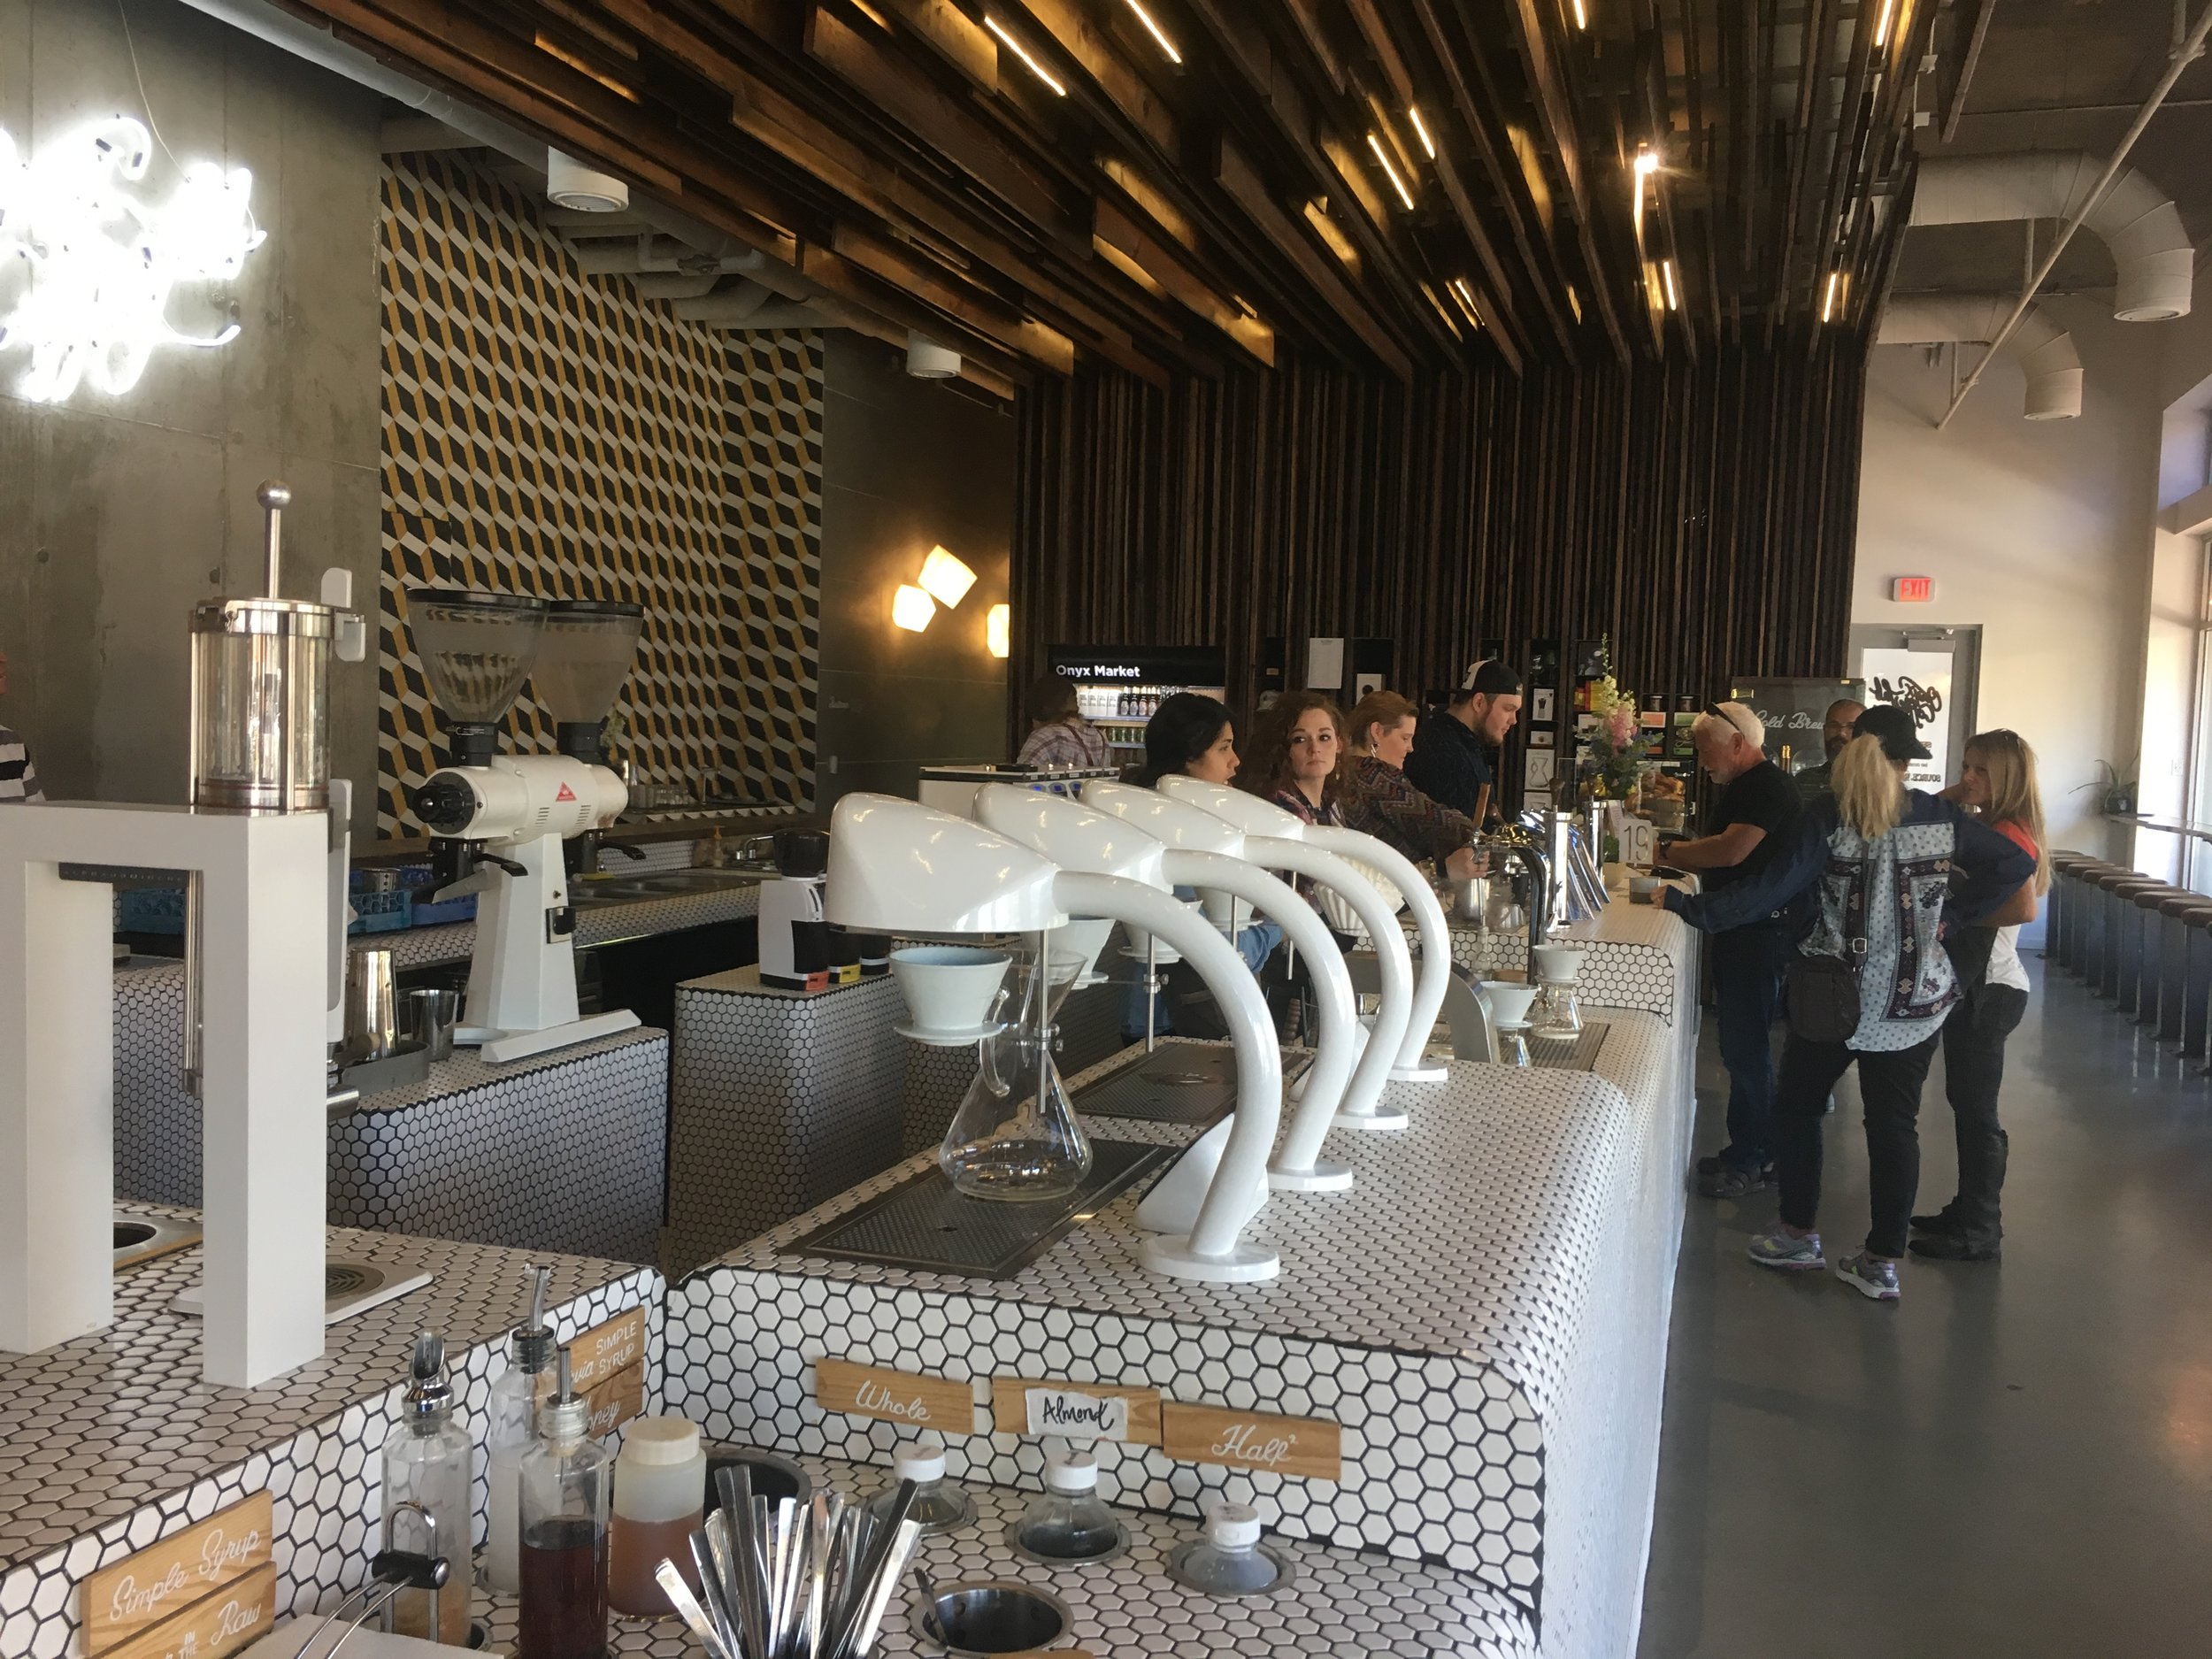 Onyx Coffee Lab, opened in 2015, is one of many new businesses to pop up as a result of the population surge. (Source: Aubrey Byron)